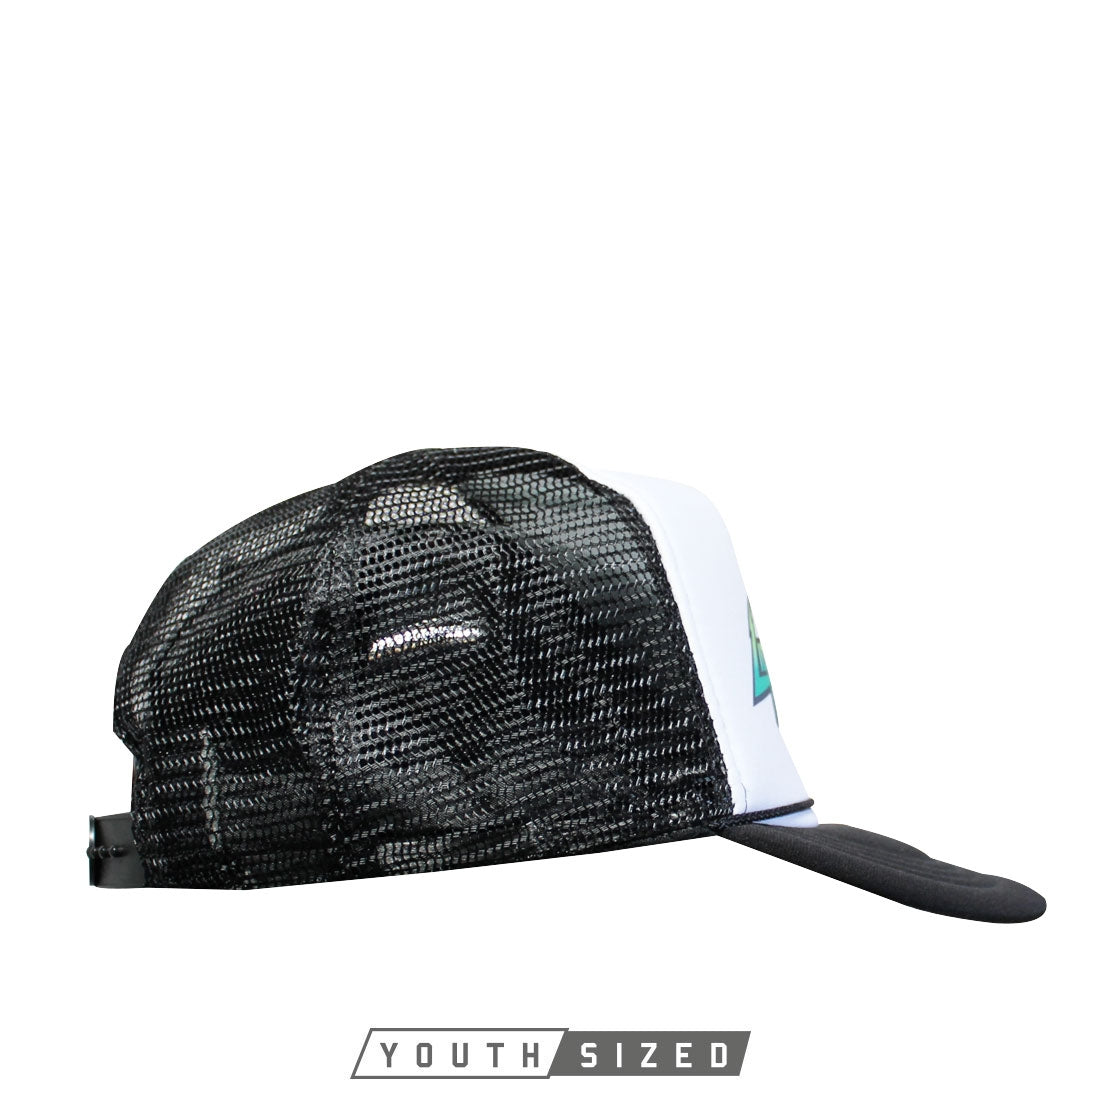 Energy Youth Curved Bill Trucker Hat in Black White Black - Side View